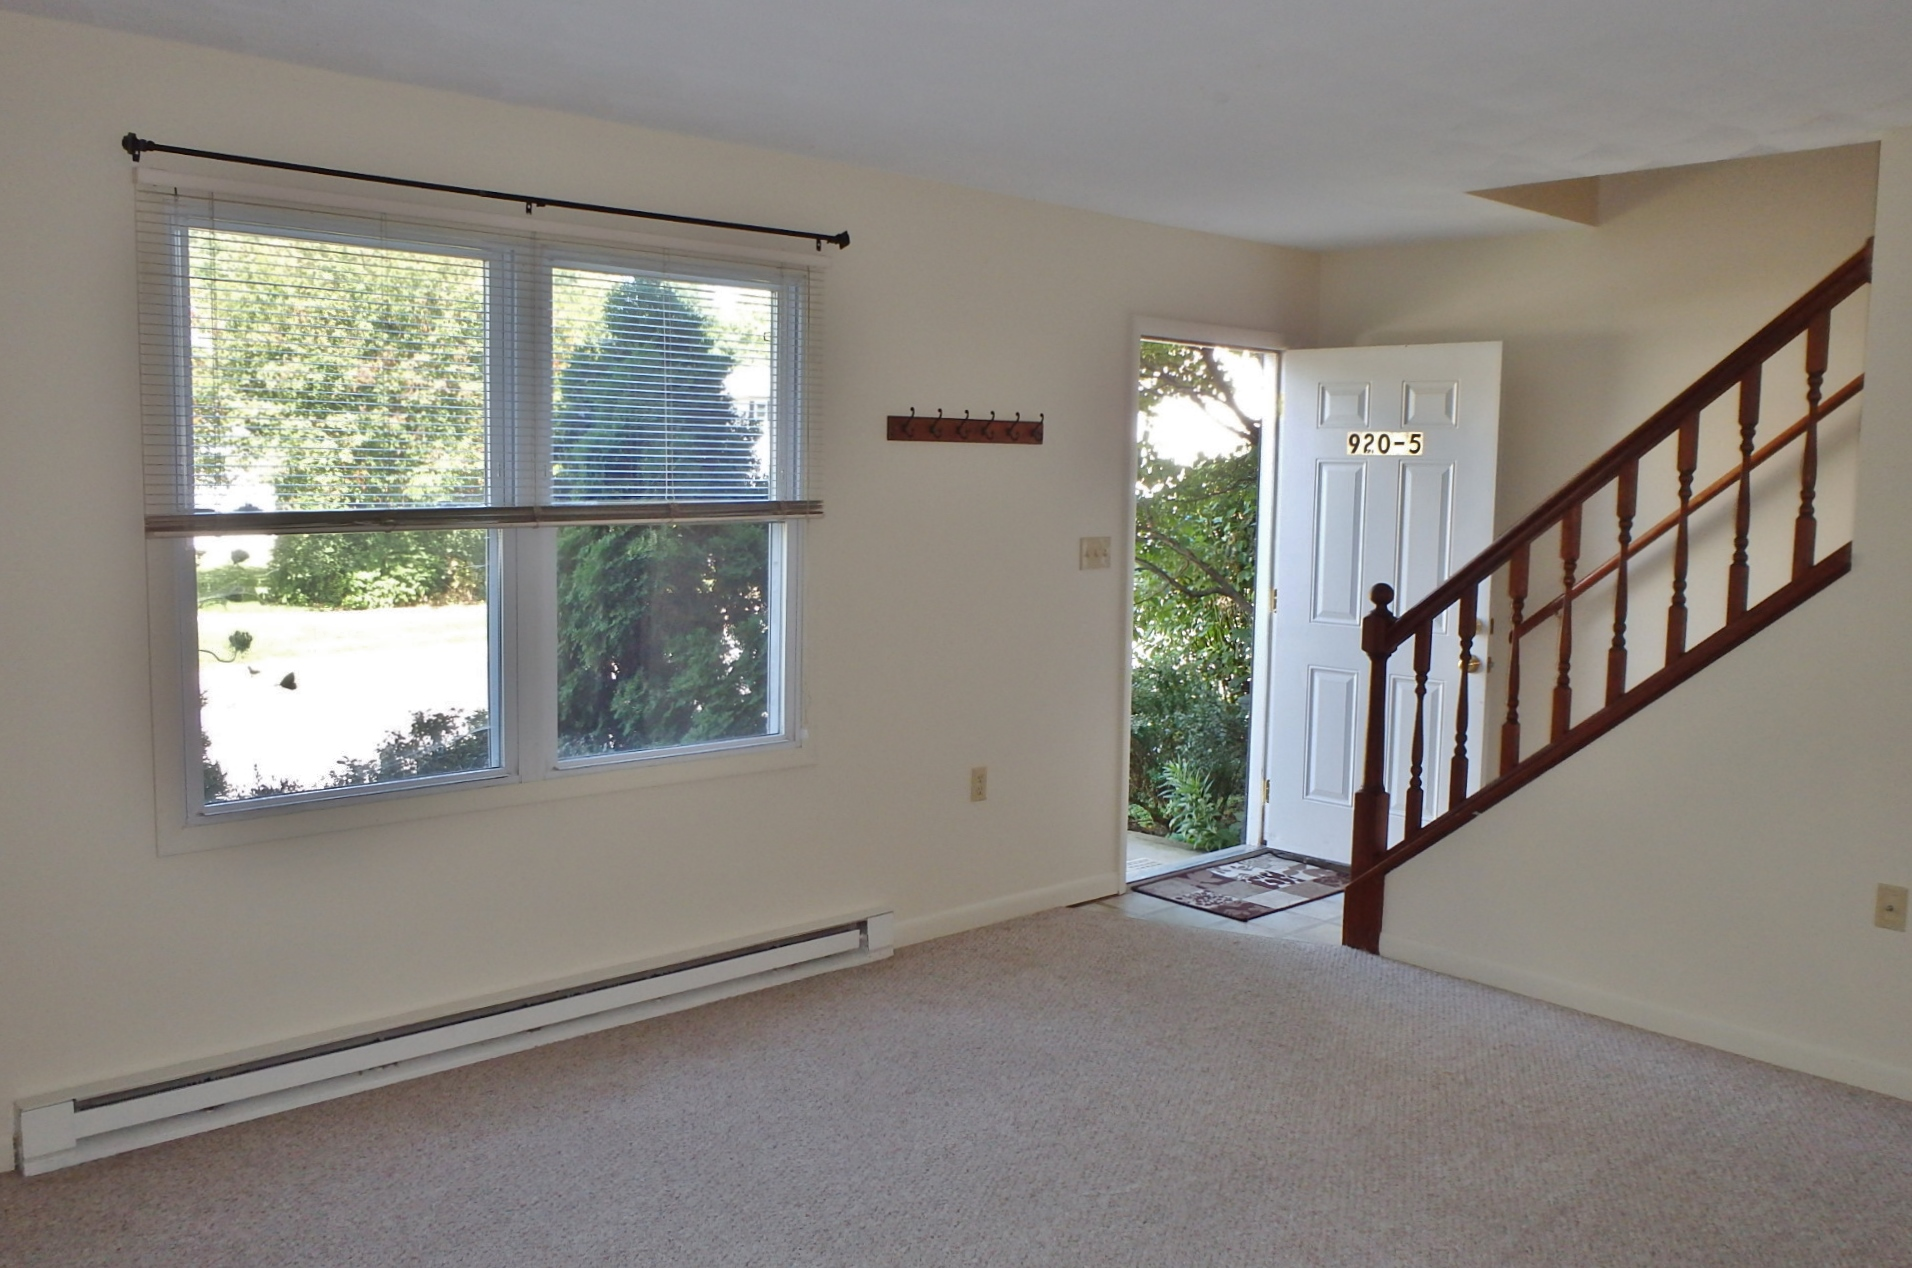 Living room photo at 920-5 Southgate Drive, State College PA.